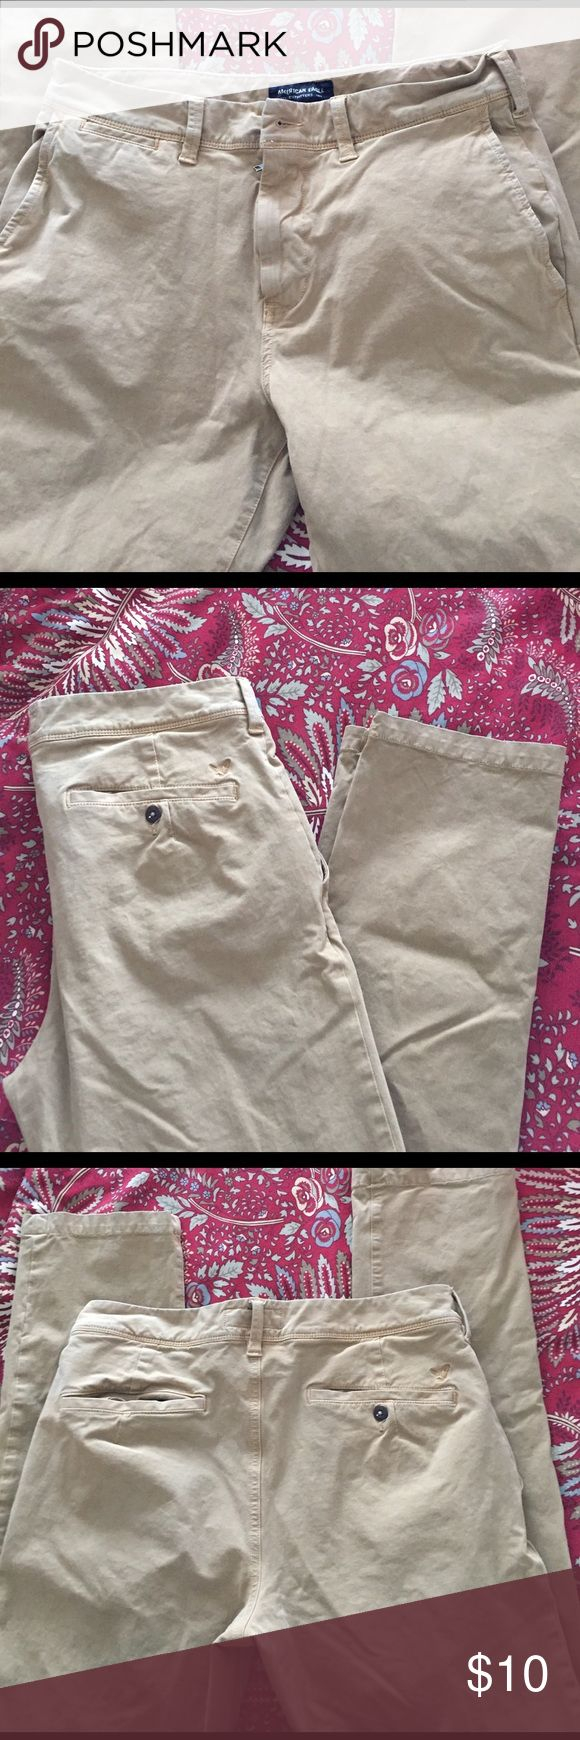 American eagle men's khaki pants slim fit 32x34 American eagle men's khaki pants slim fit 32x34.  Color is more yellow than beige reflected in last pic.  Straight leg slim fit. Front pockets flat front look.  Great condition American Eagle Outfitters Pants Chinos & Khakis